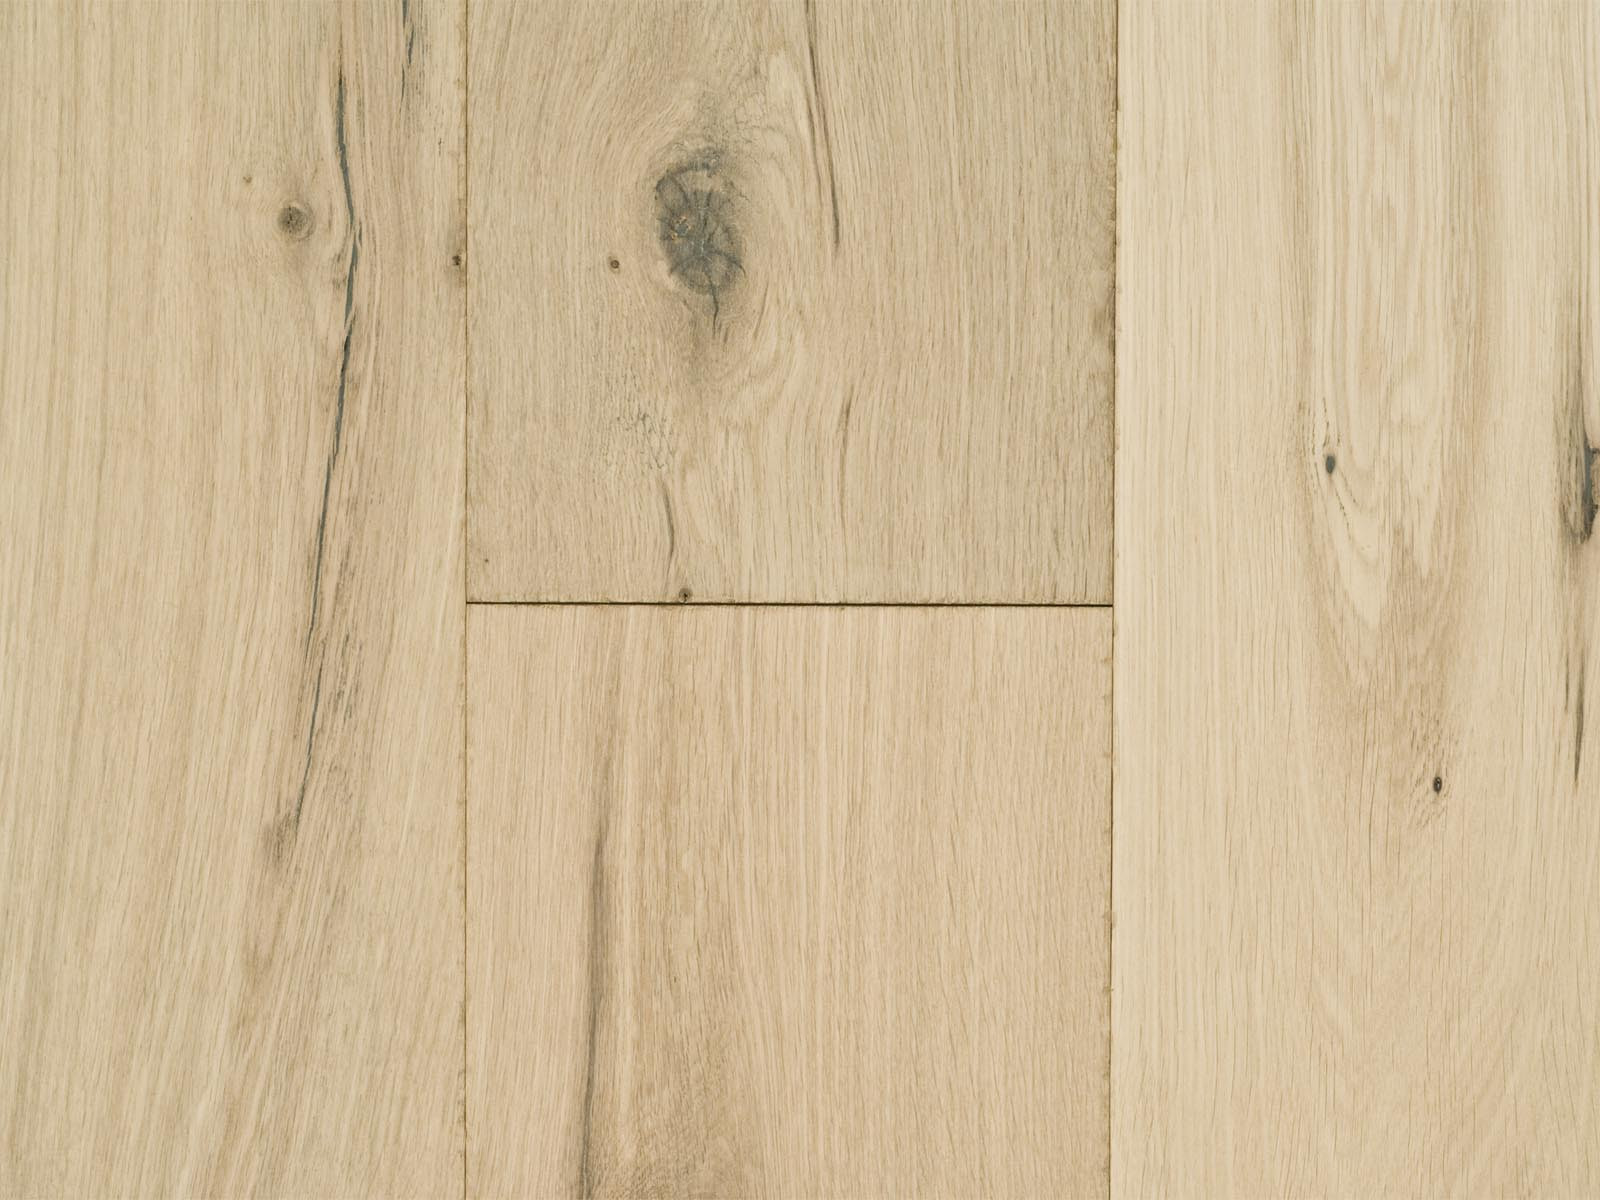 European Oak Hardwood Floors Of Duchateau Hardwood Flooring Houston Tx Discount Engineered Wood In White Oiled European Oak